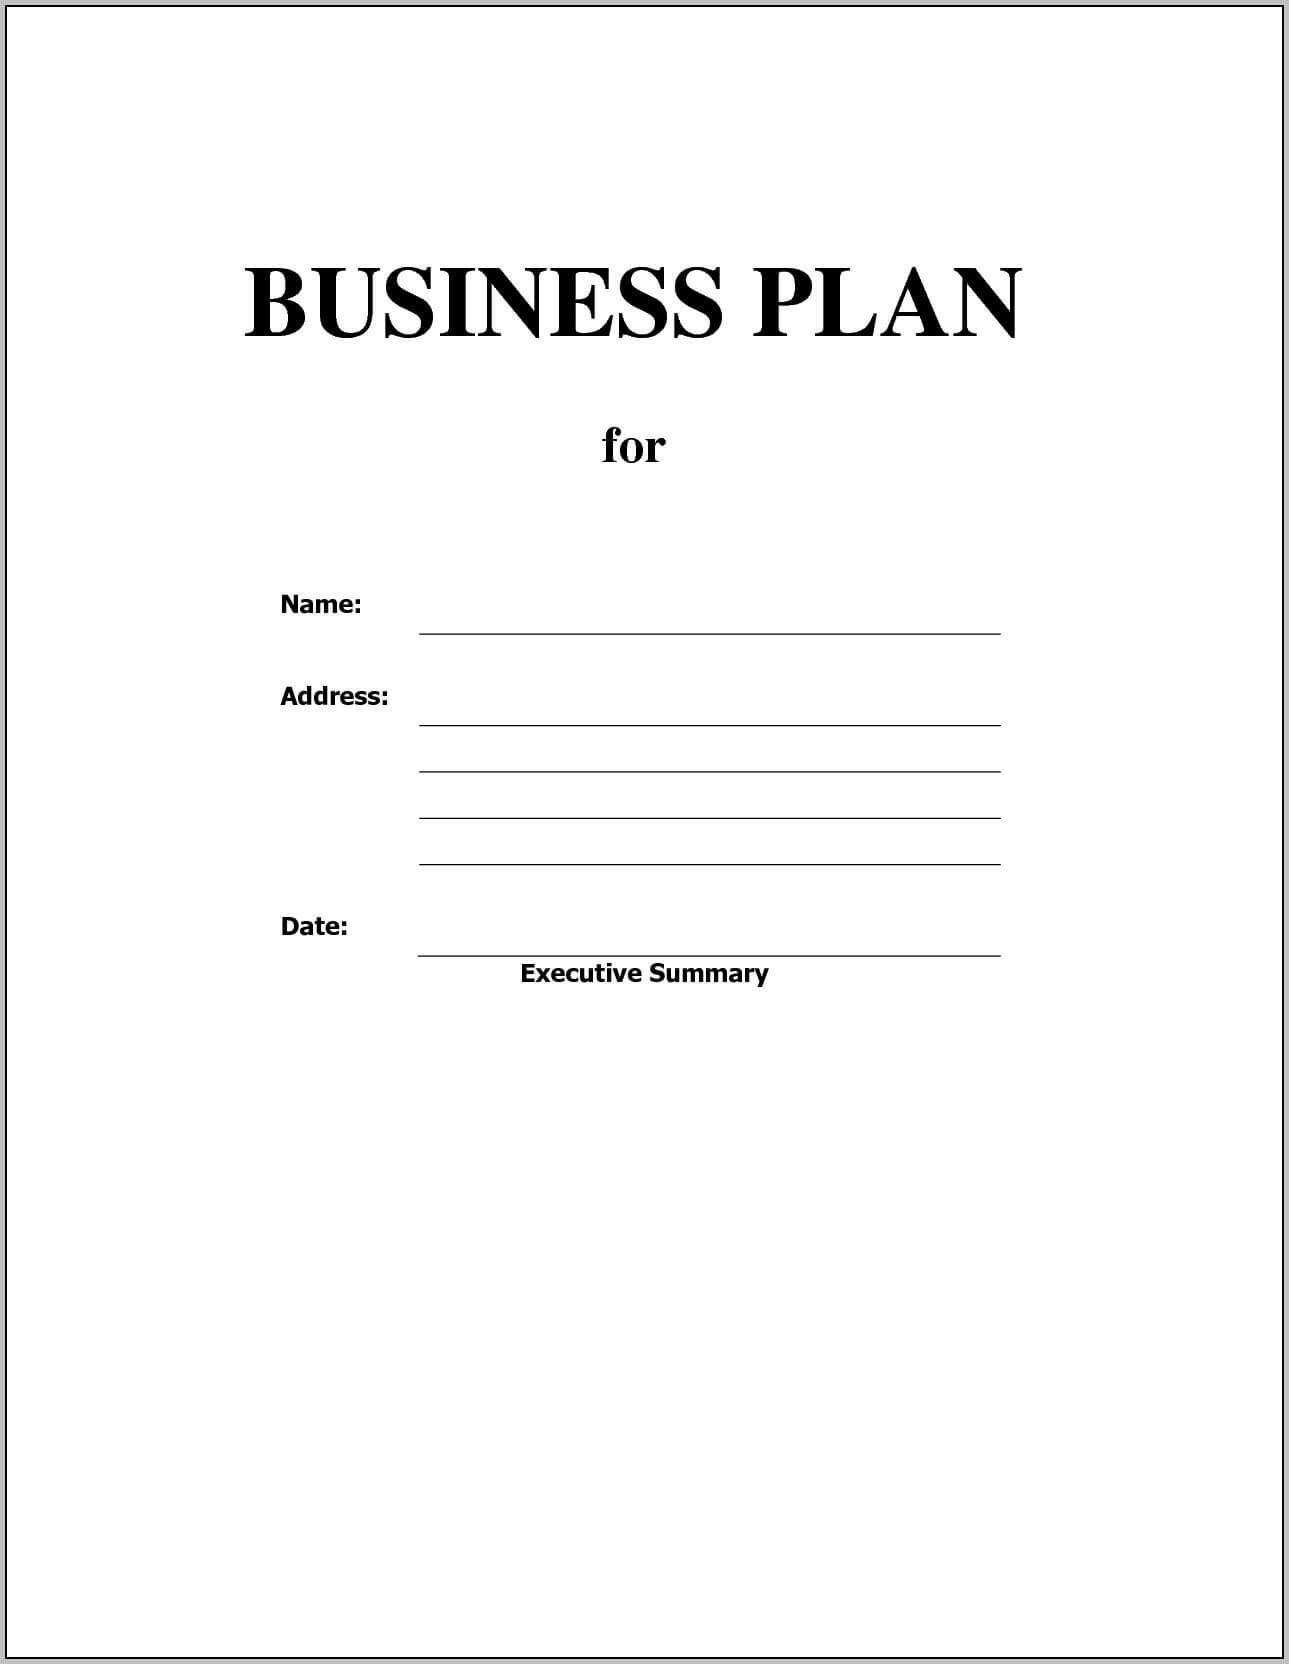 010 Business Plan Template Free Word Doc Blank At Impressive Throughout Business Plan Template Free Word Document